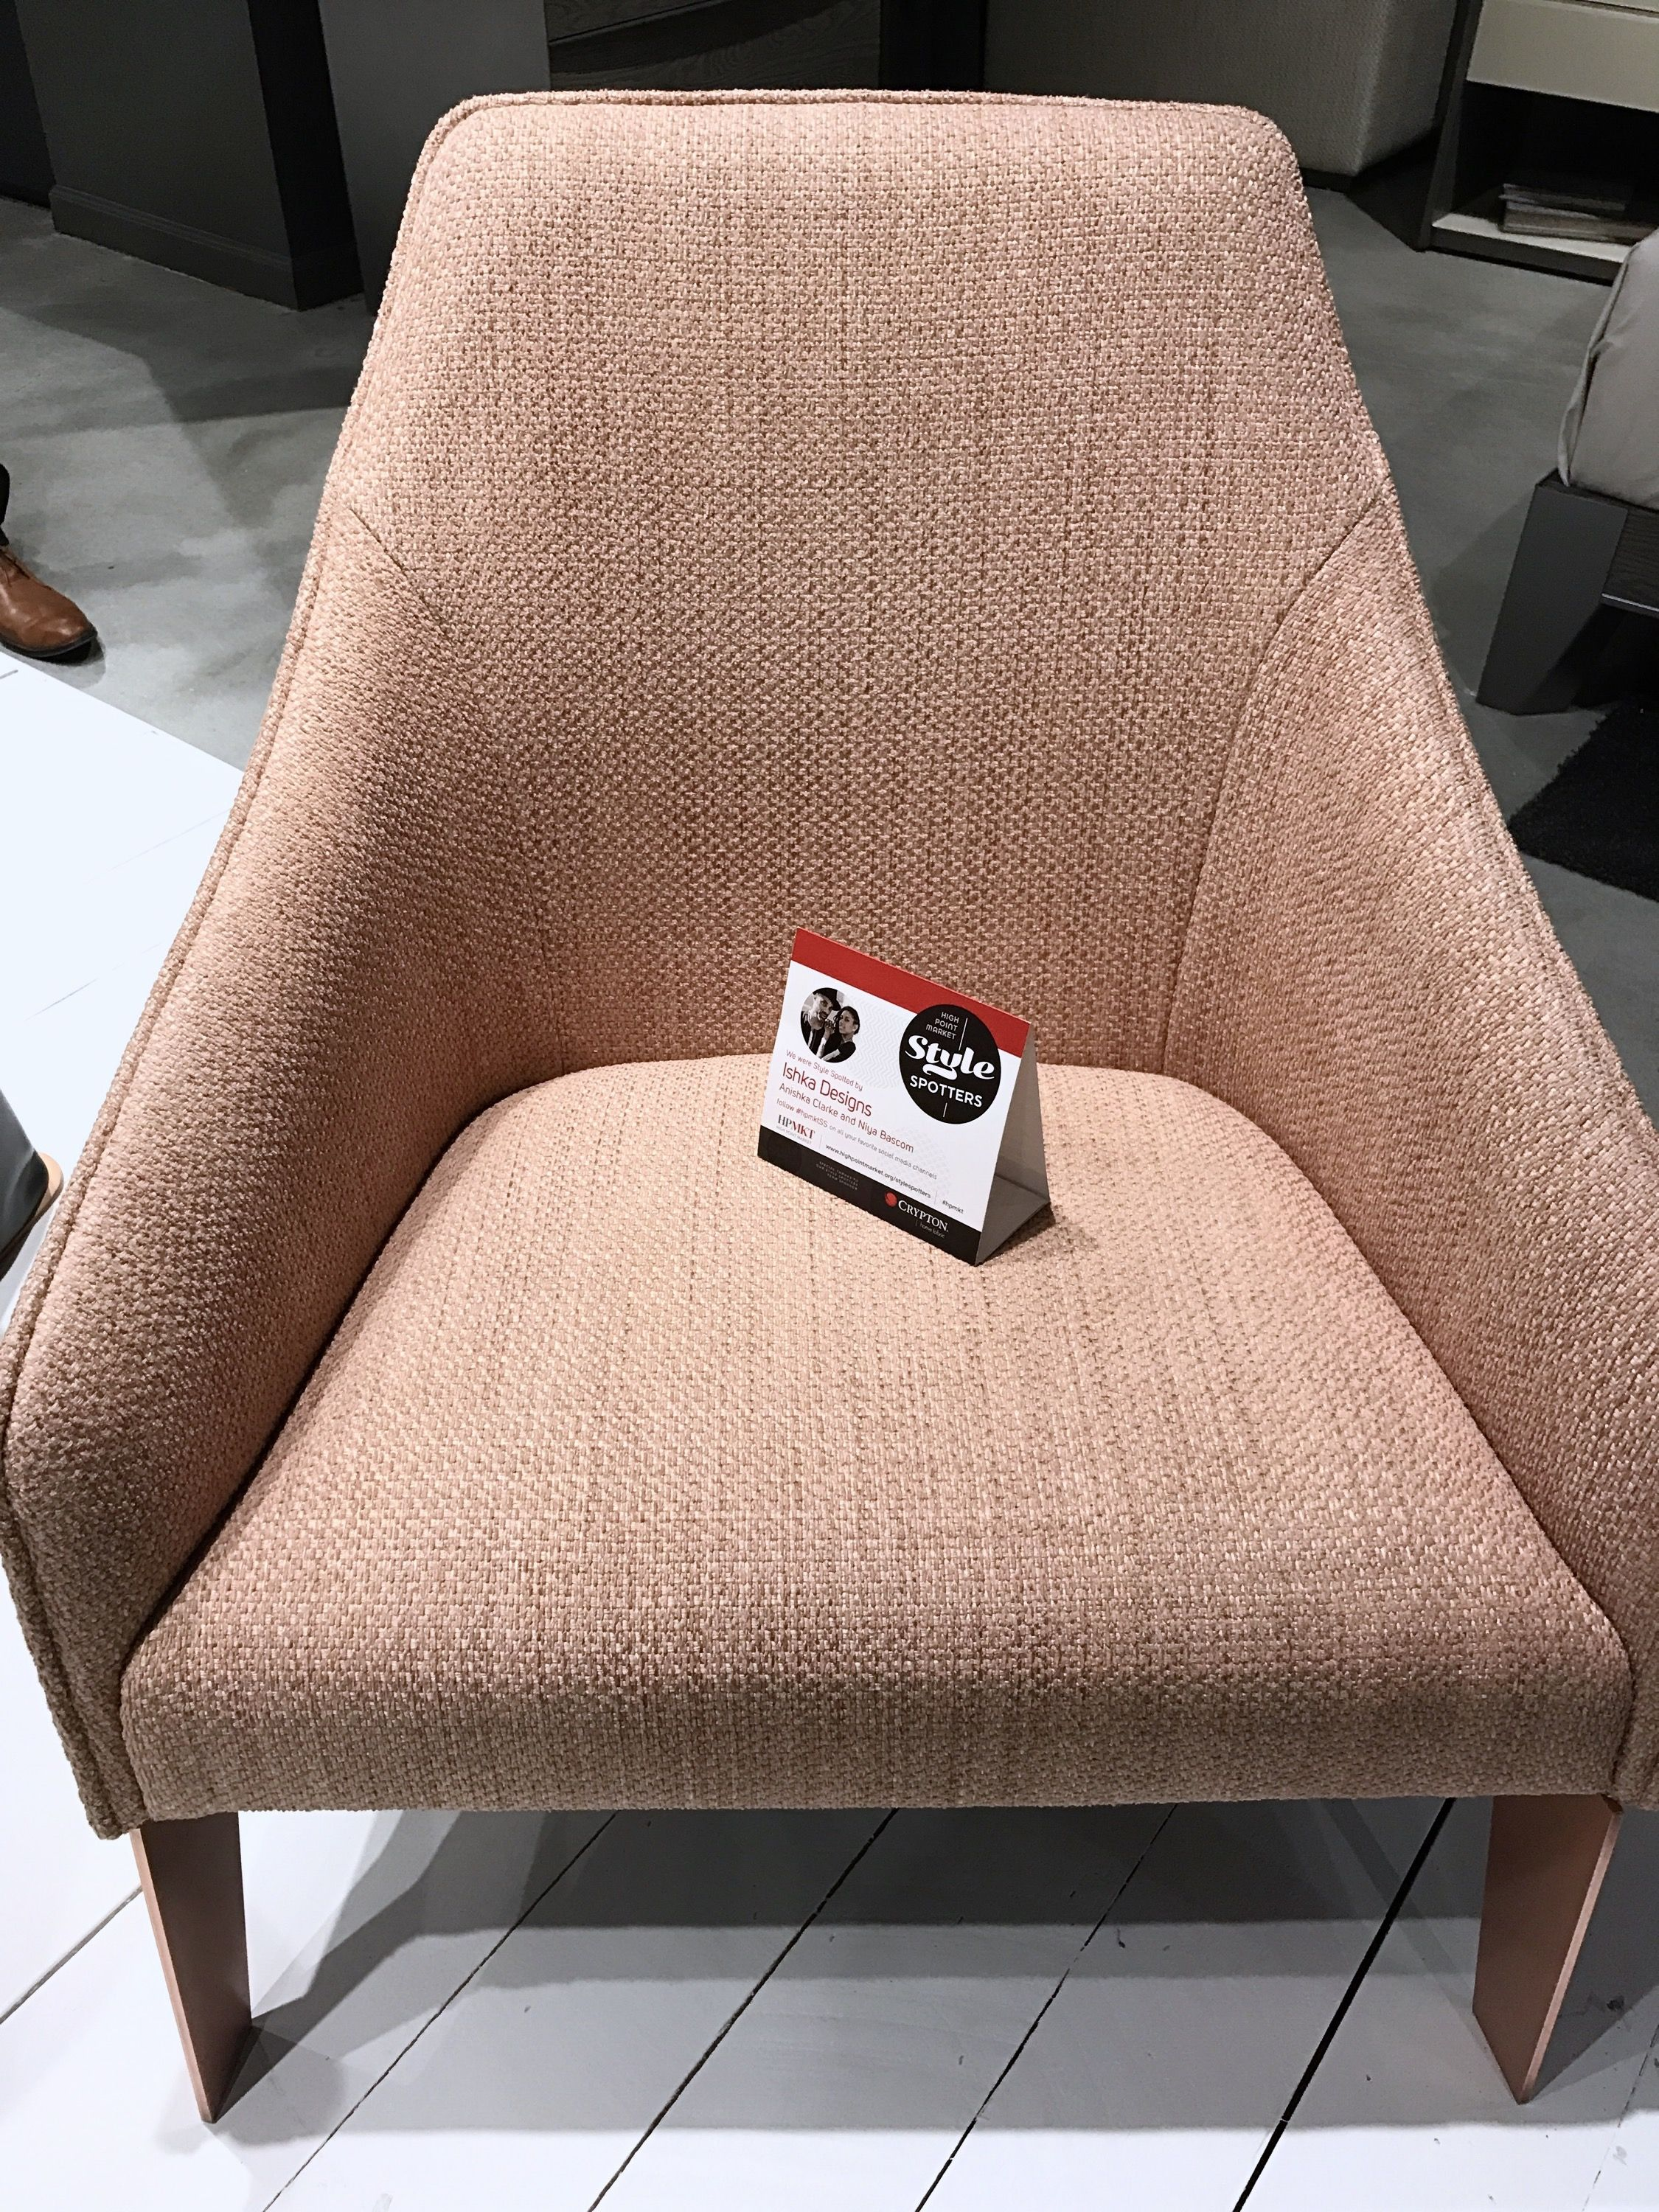 Rose gold skinny legs support a plush lounge chair by Canadian